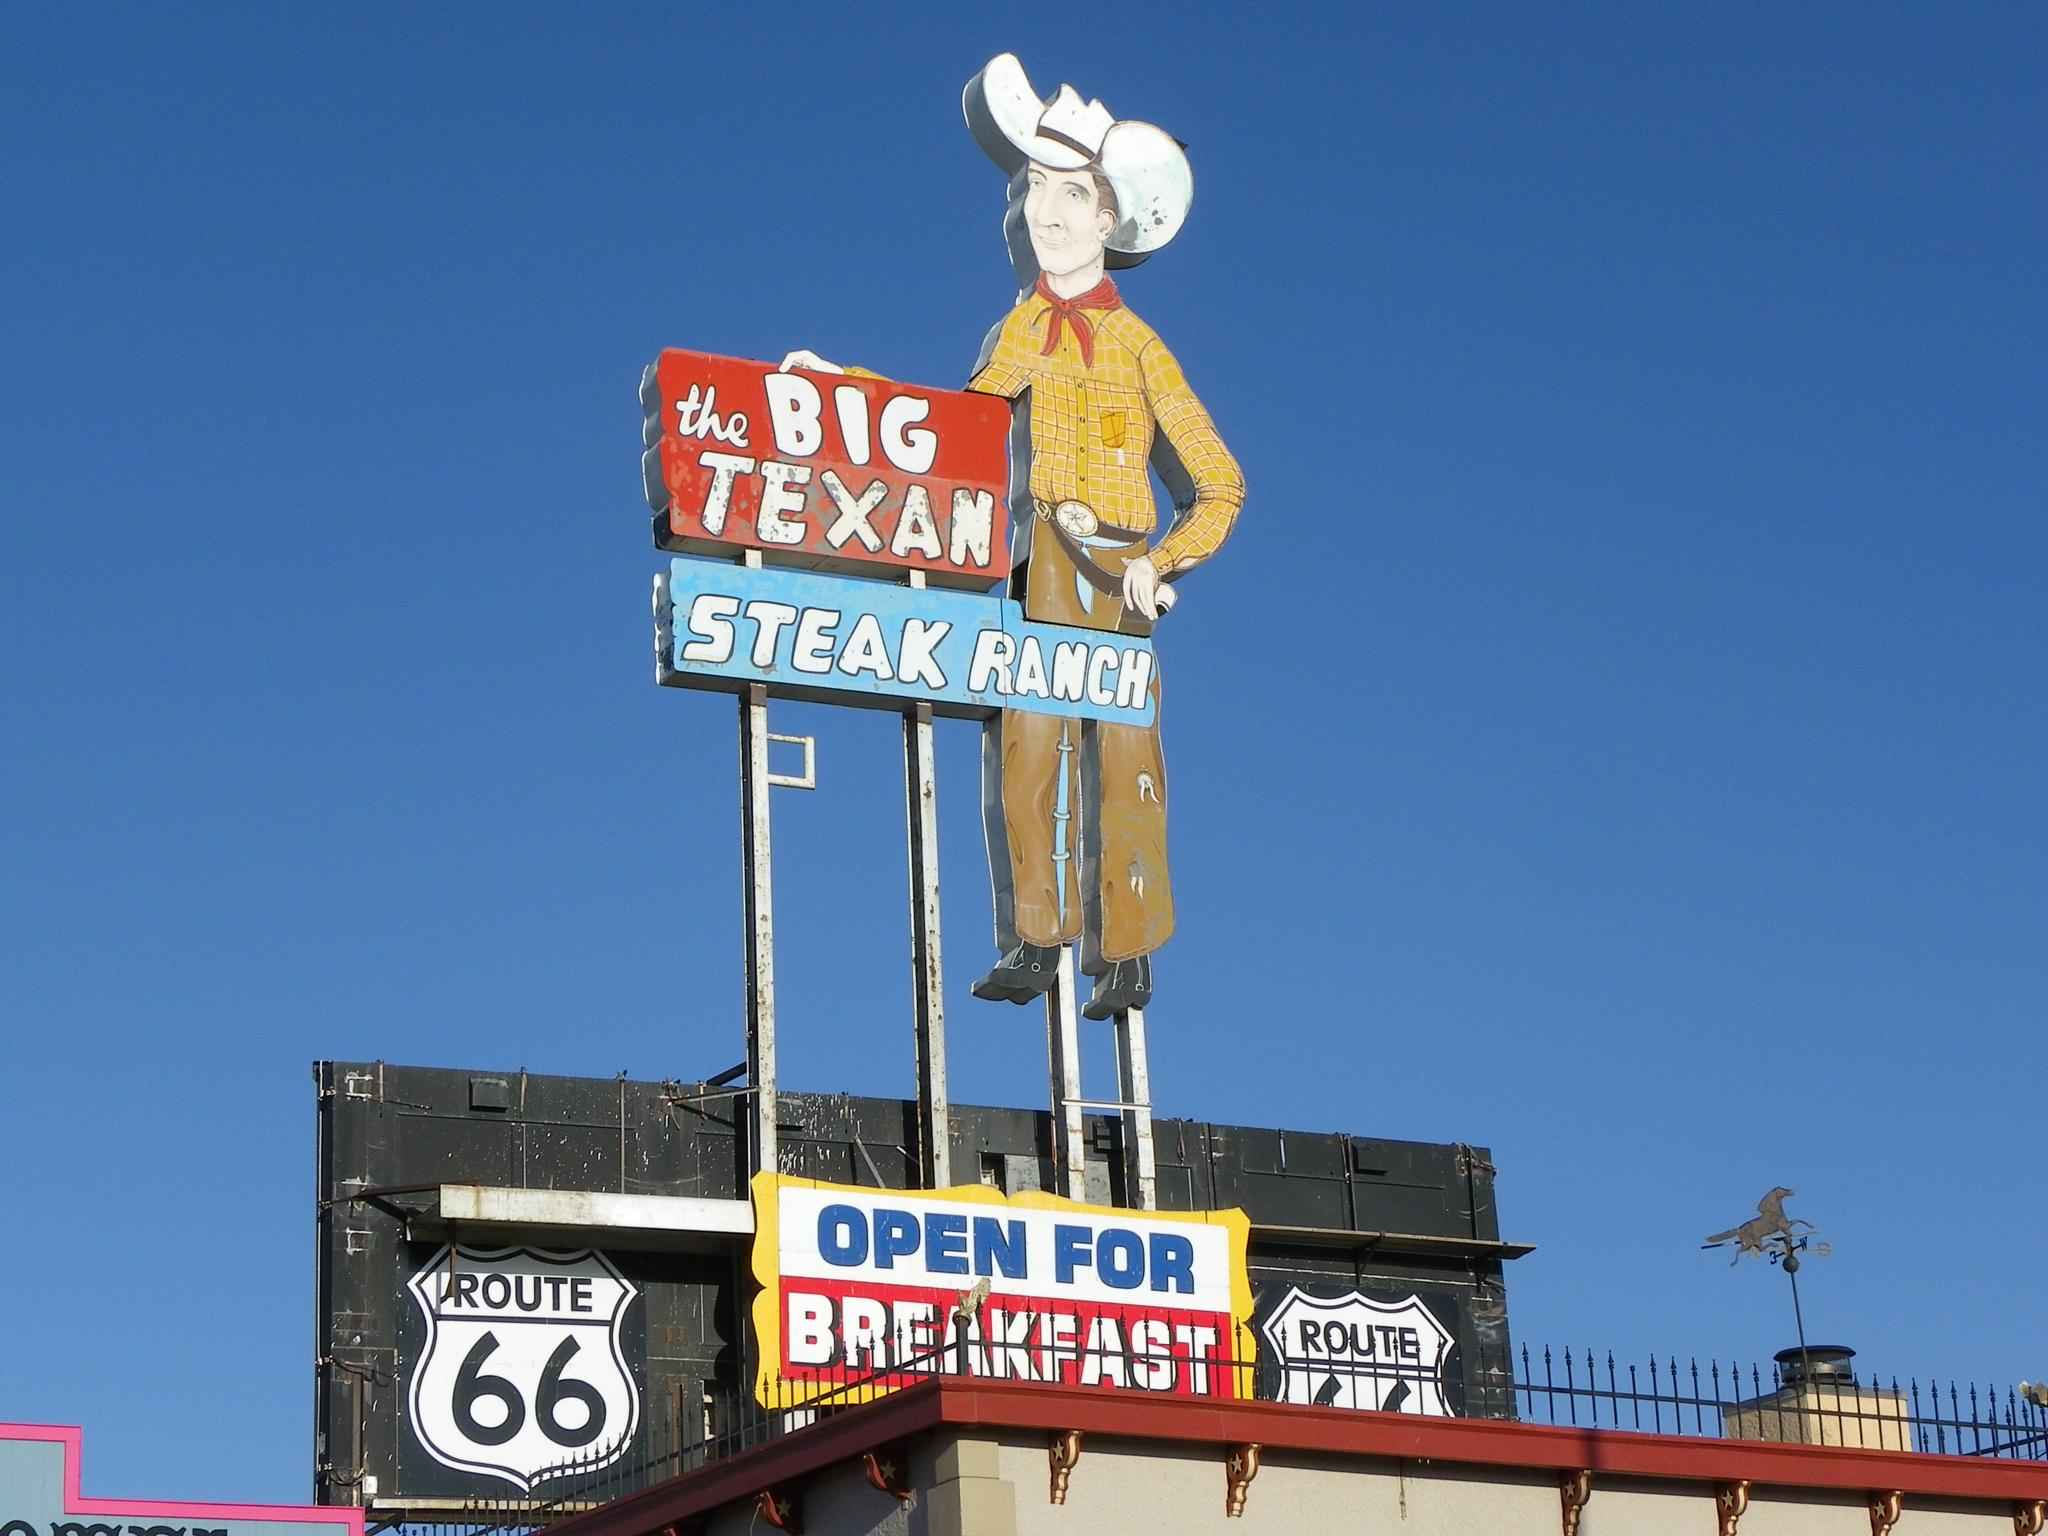 Route 66 Texas USA by Floralzoom